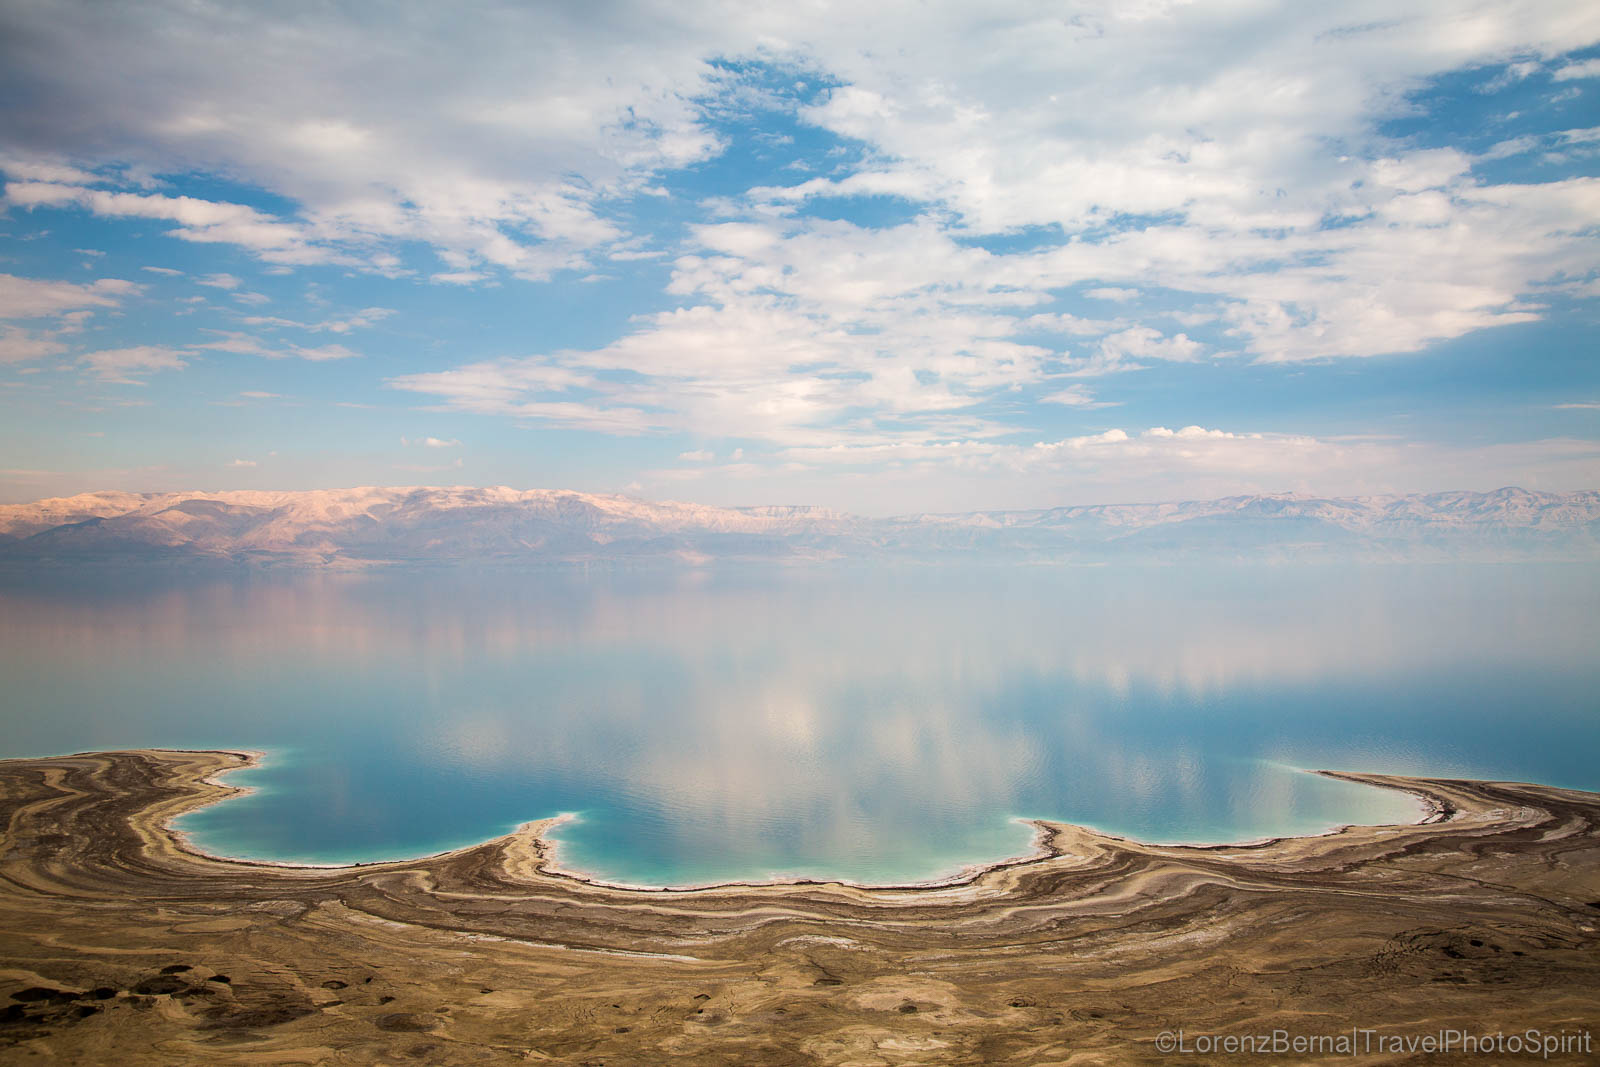 Unique landscape of the Dead Sea in the mist of heat, overlooking the desert hills of Jordan, Israel.